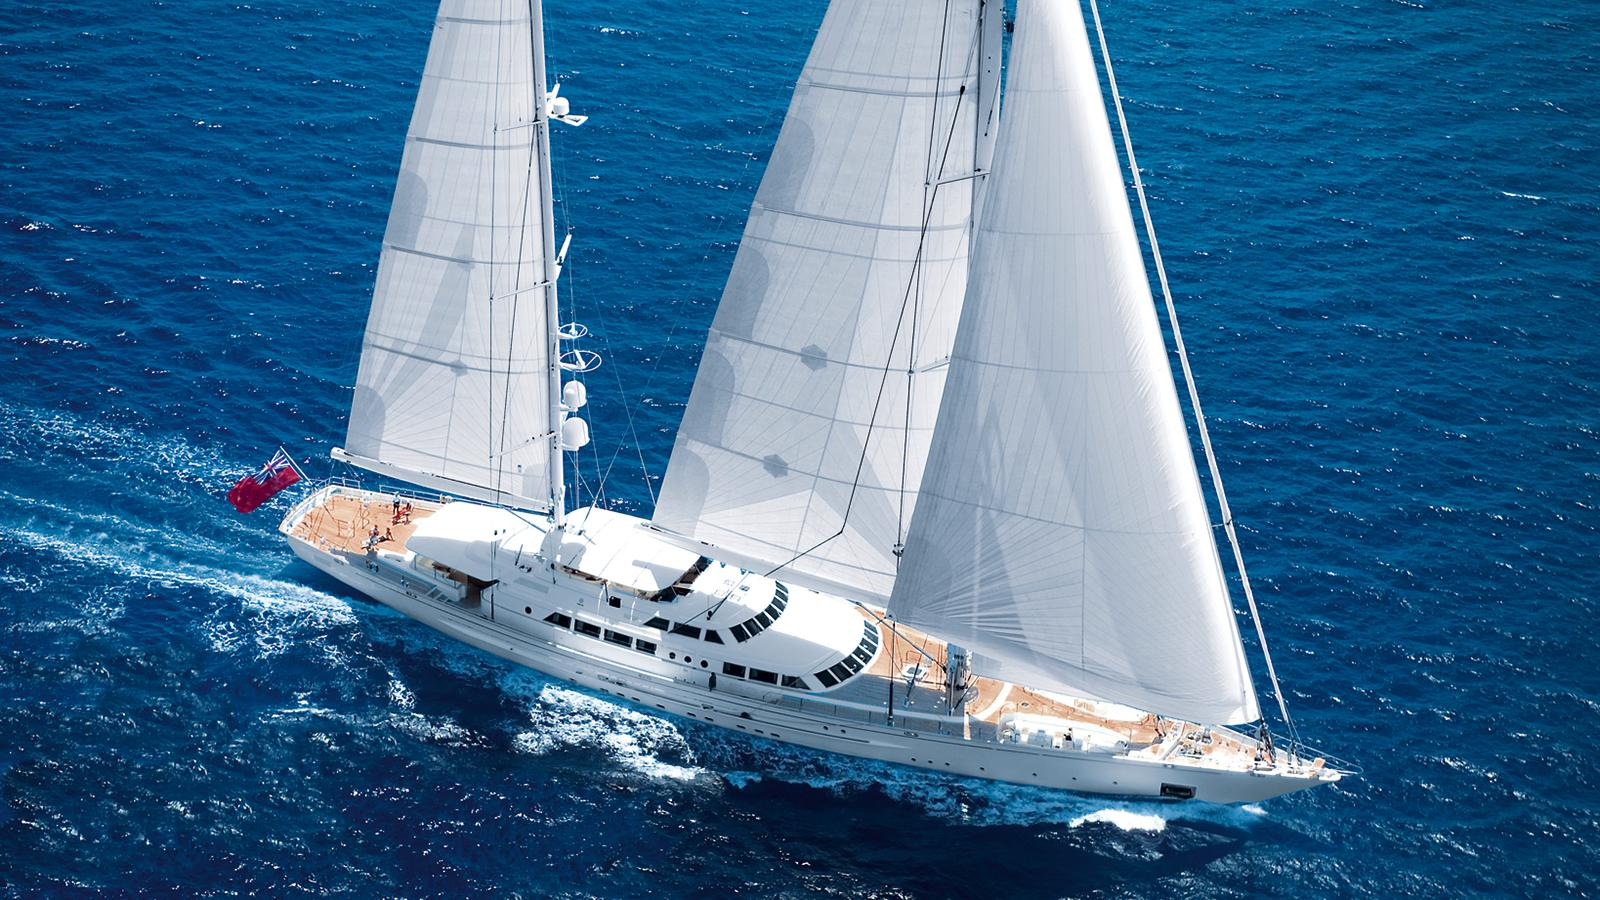 spirit-of-the-cs-super-yacht-sailing-boat